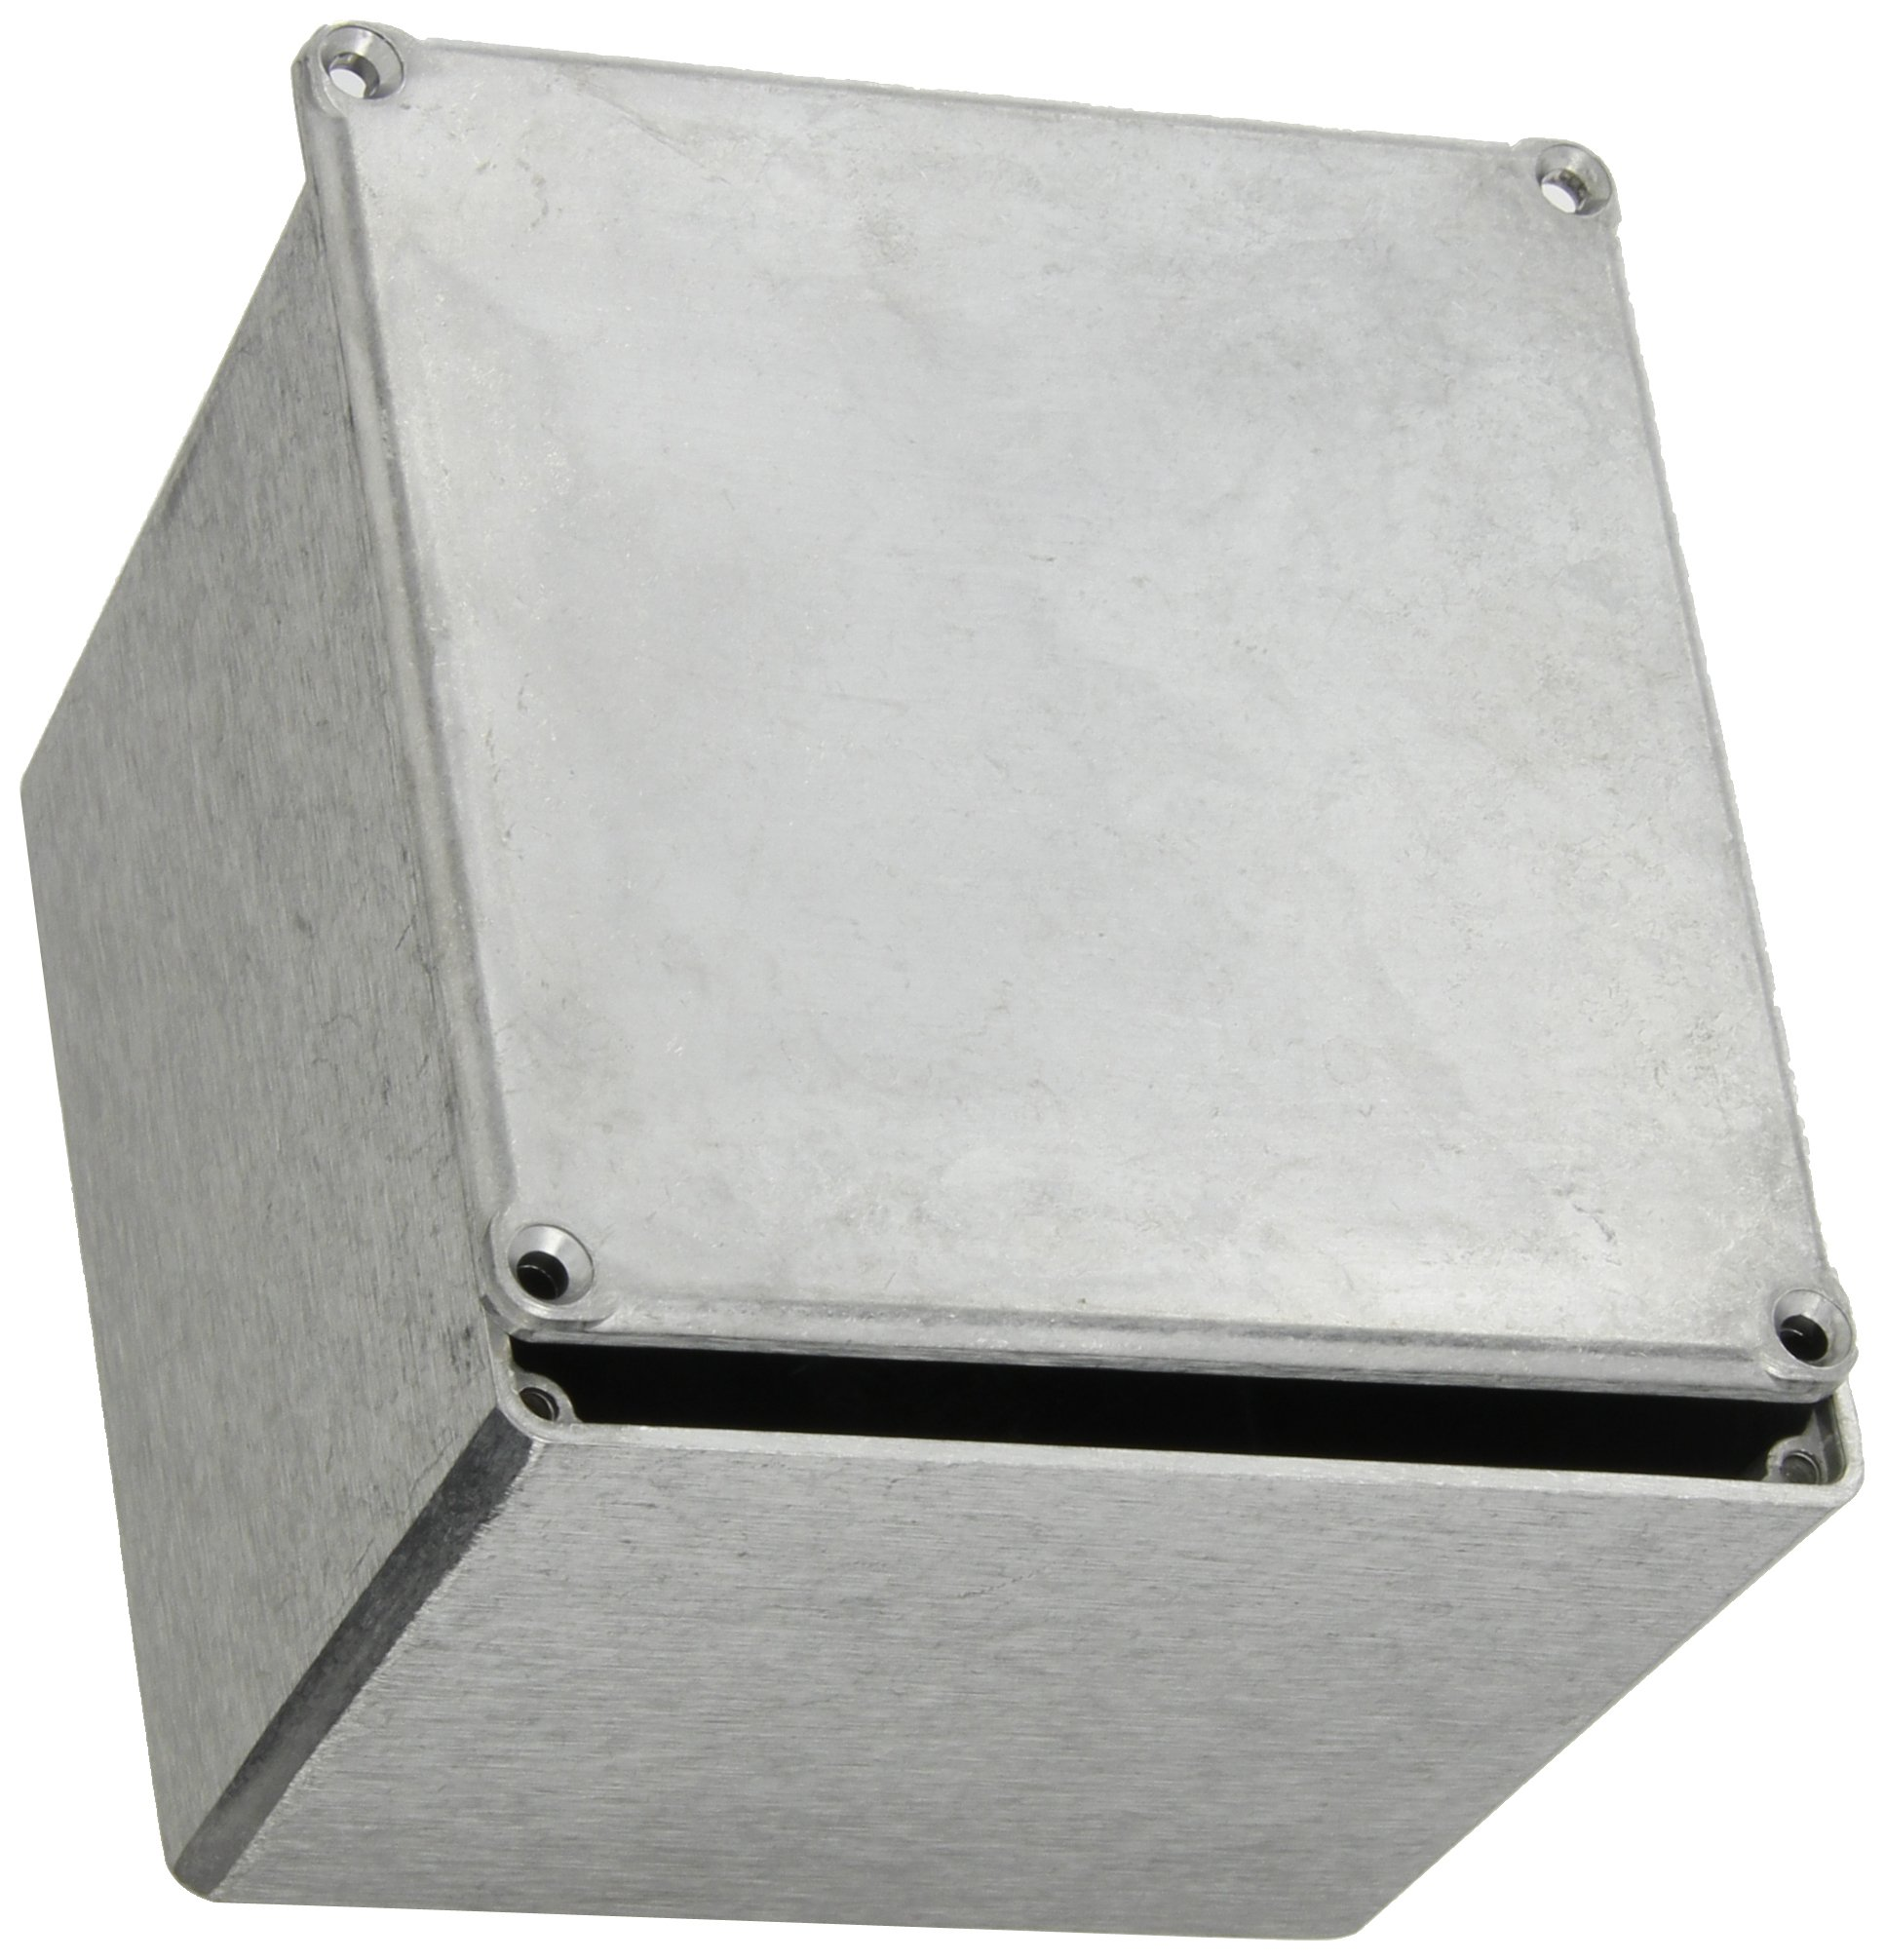 BUD Industries CU-475 Aluminum Econobox, 4-3/4'' Length x 4-3/4'' Width x 3-3/4'' Height, Natural Finish